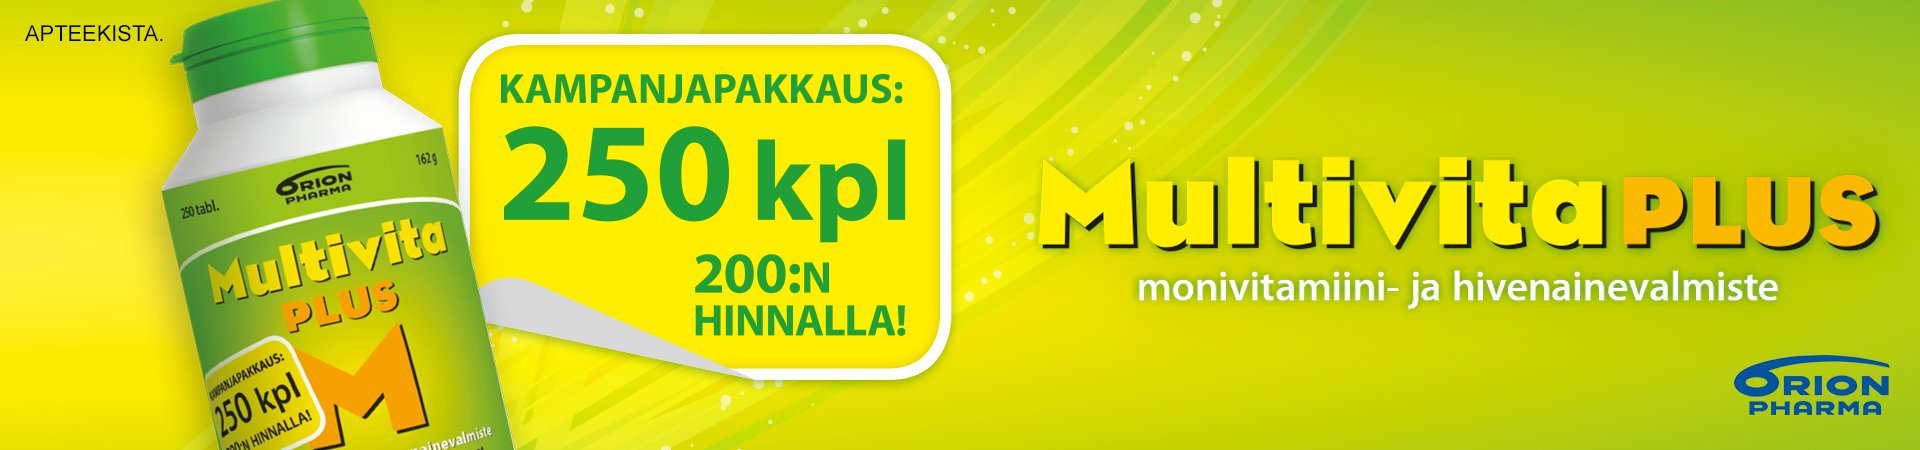 Multivita plus monivitamiini 250 tablettia kampanja